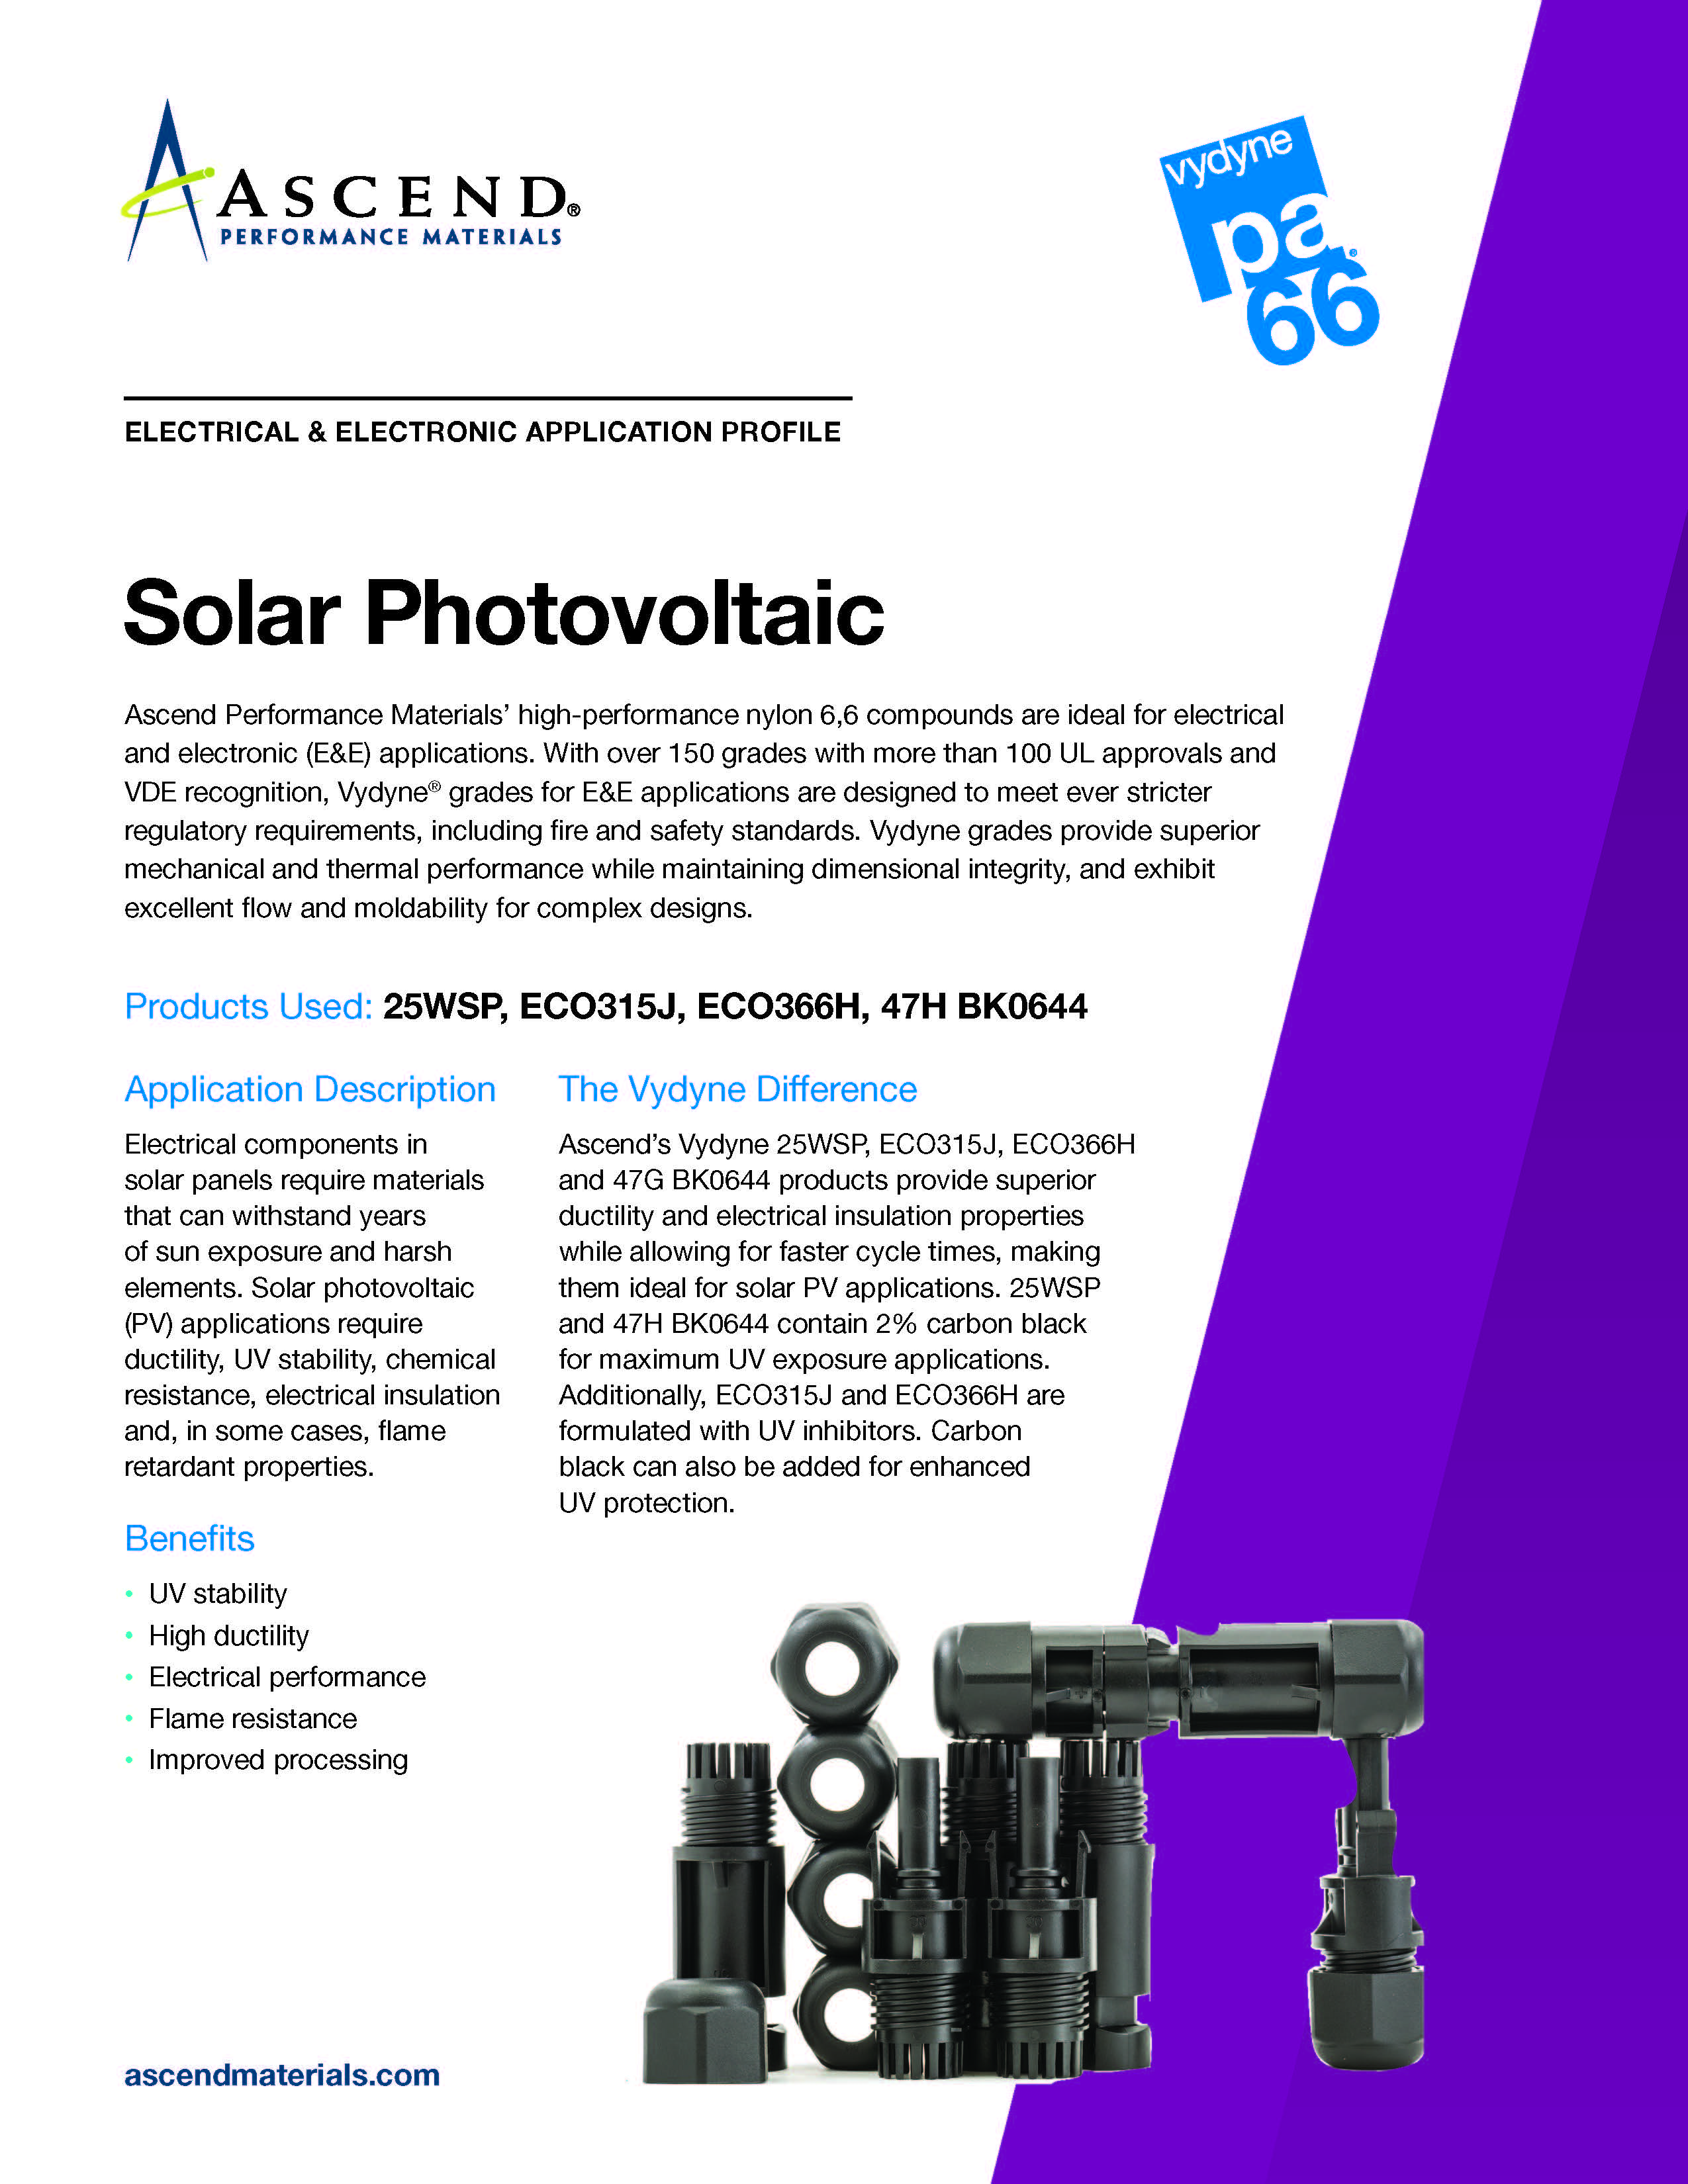 Electrical/electronic application: solar photovoltaic